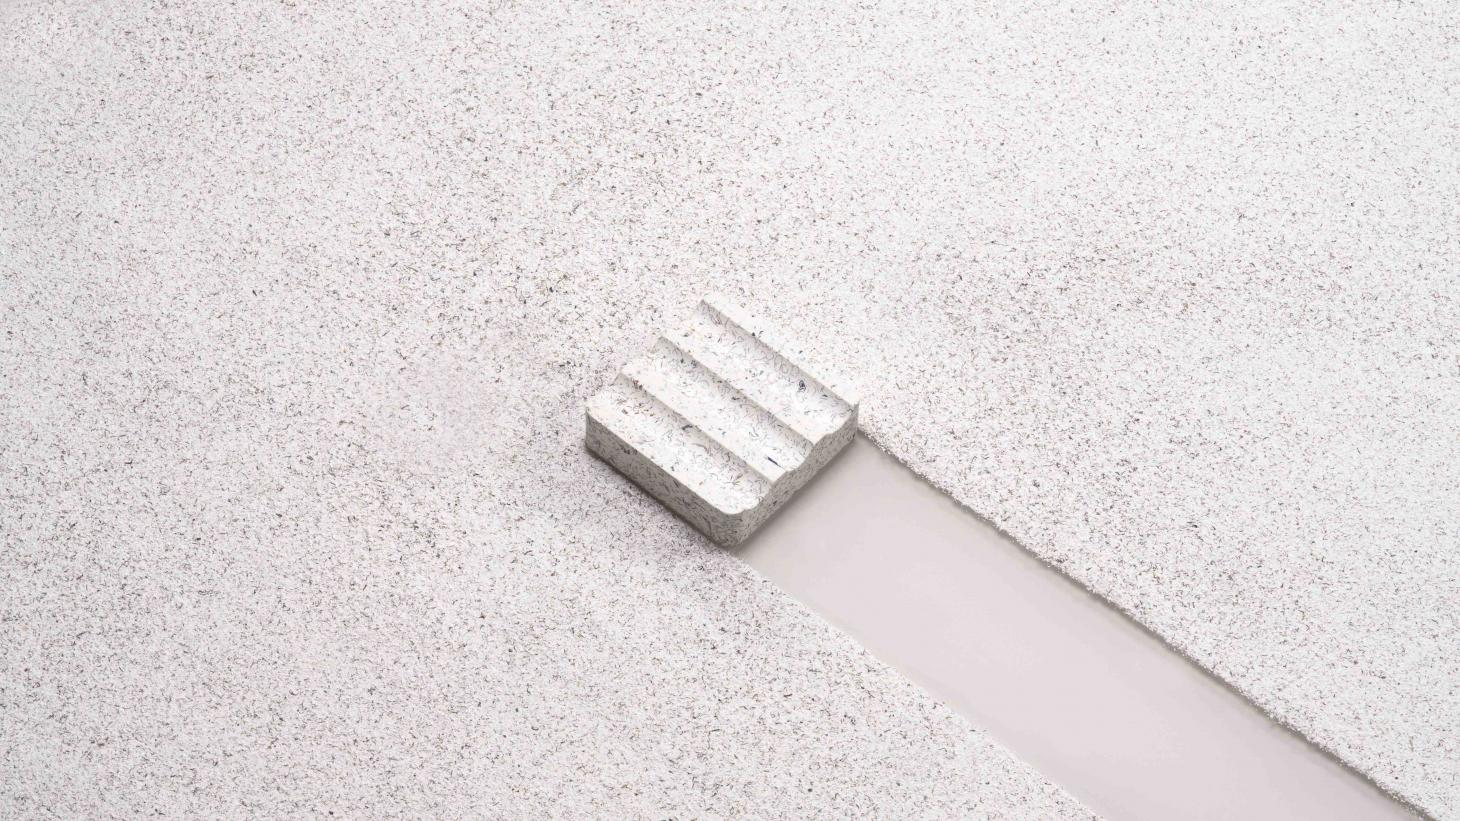 Terrazzo pen rest made of recycled materials on a surface of white and gray ebonite offcuts